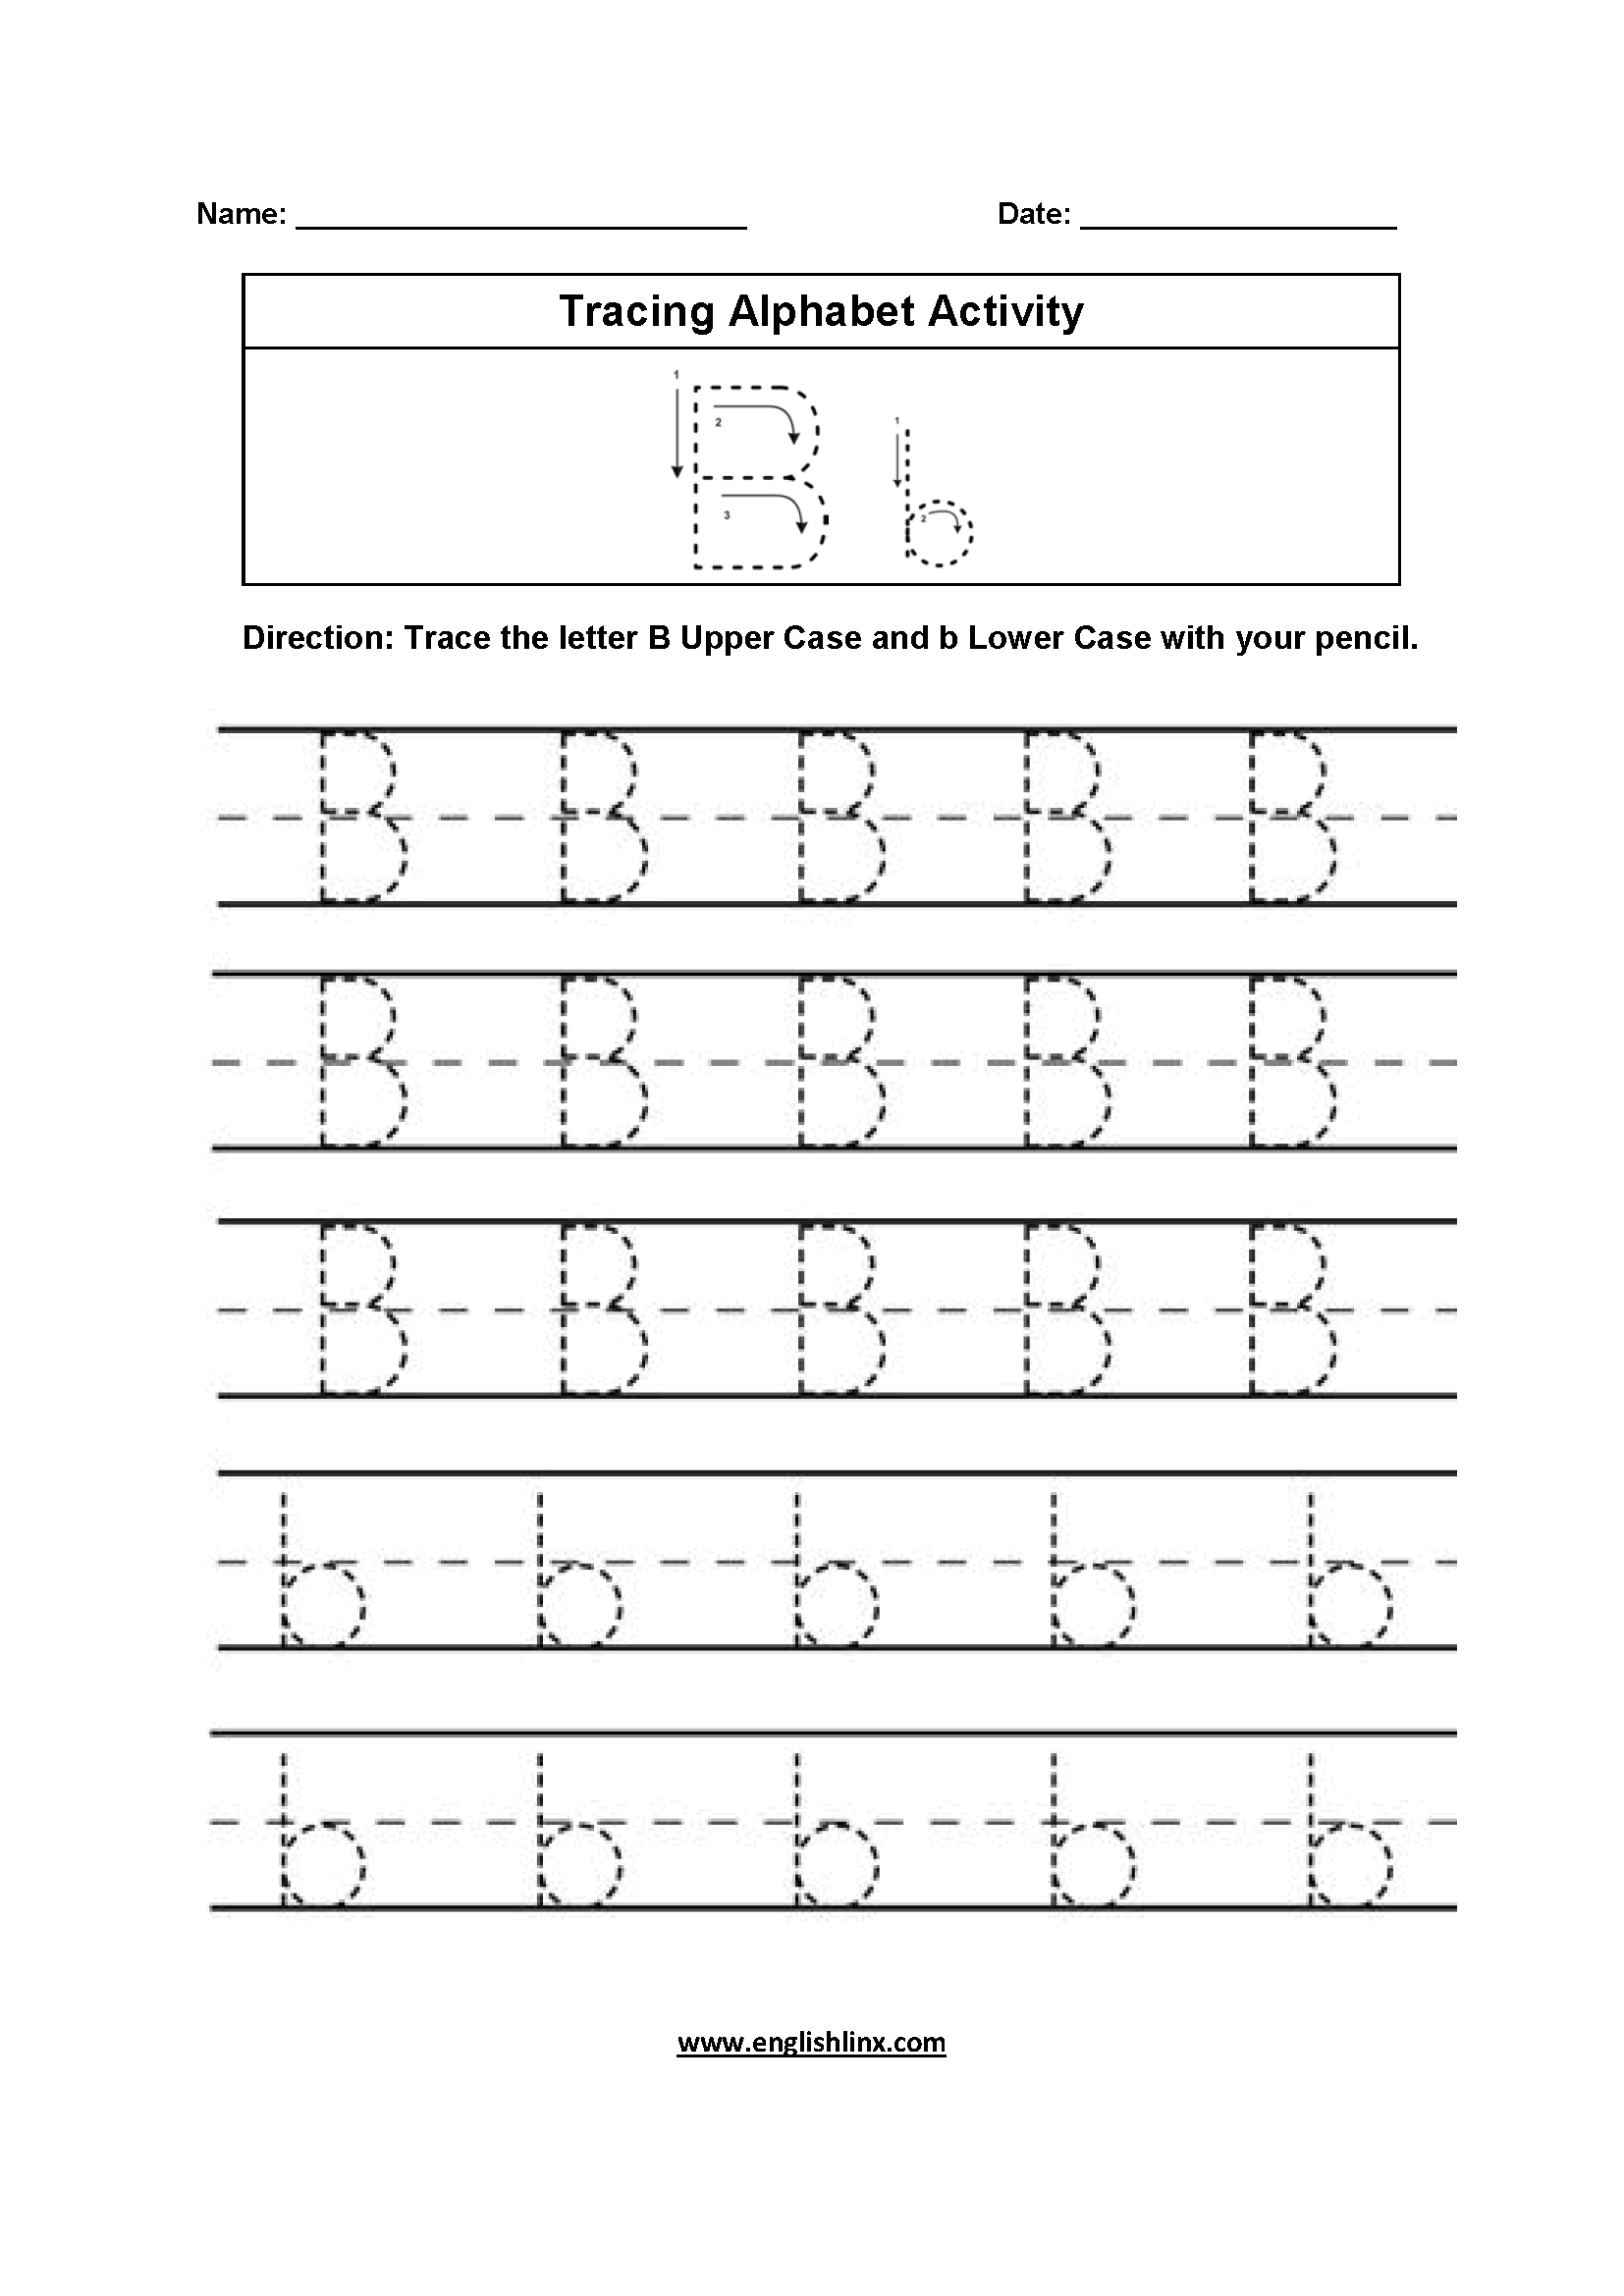 Alphabet Worksheets  Tracing Alphabet Worksheets Throughout Alphabet Tracing Worksheets Pdf